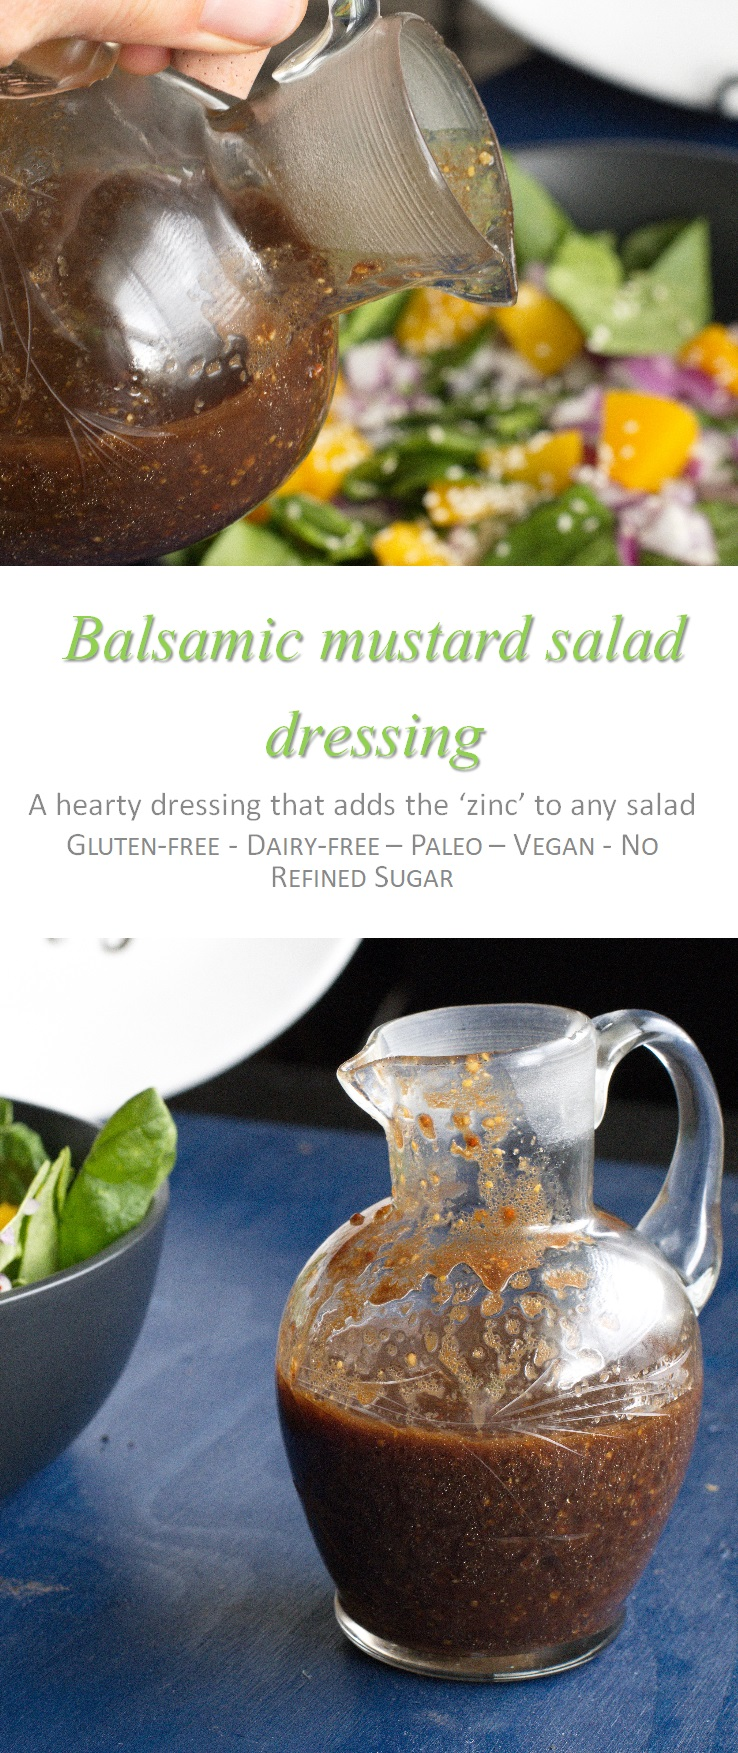 This balsamic mustard salad dressing is so awesome, and can be used in other salads, as it gives a special oomph to what can be a pretty boring meal. #saladdressing #cookathome #glutenfree #dairyfree